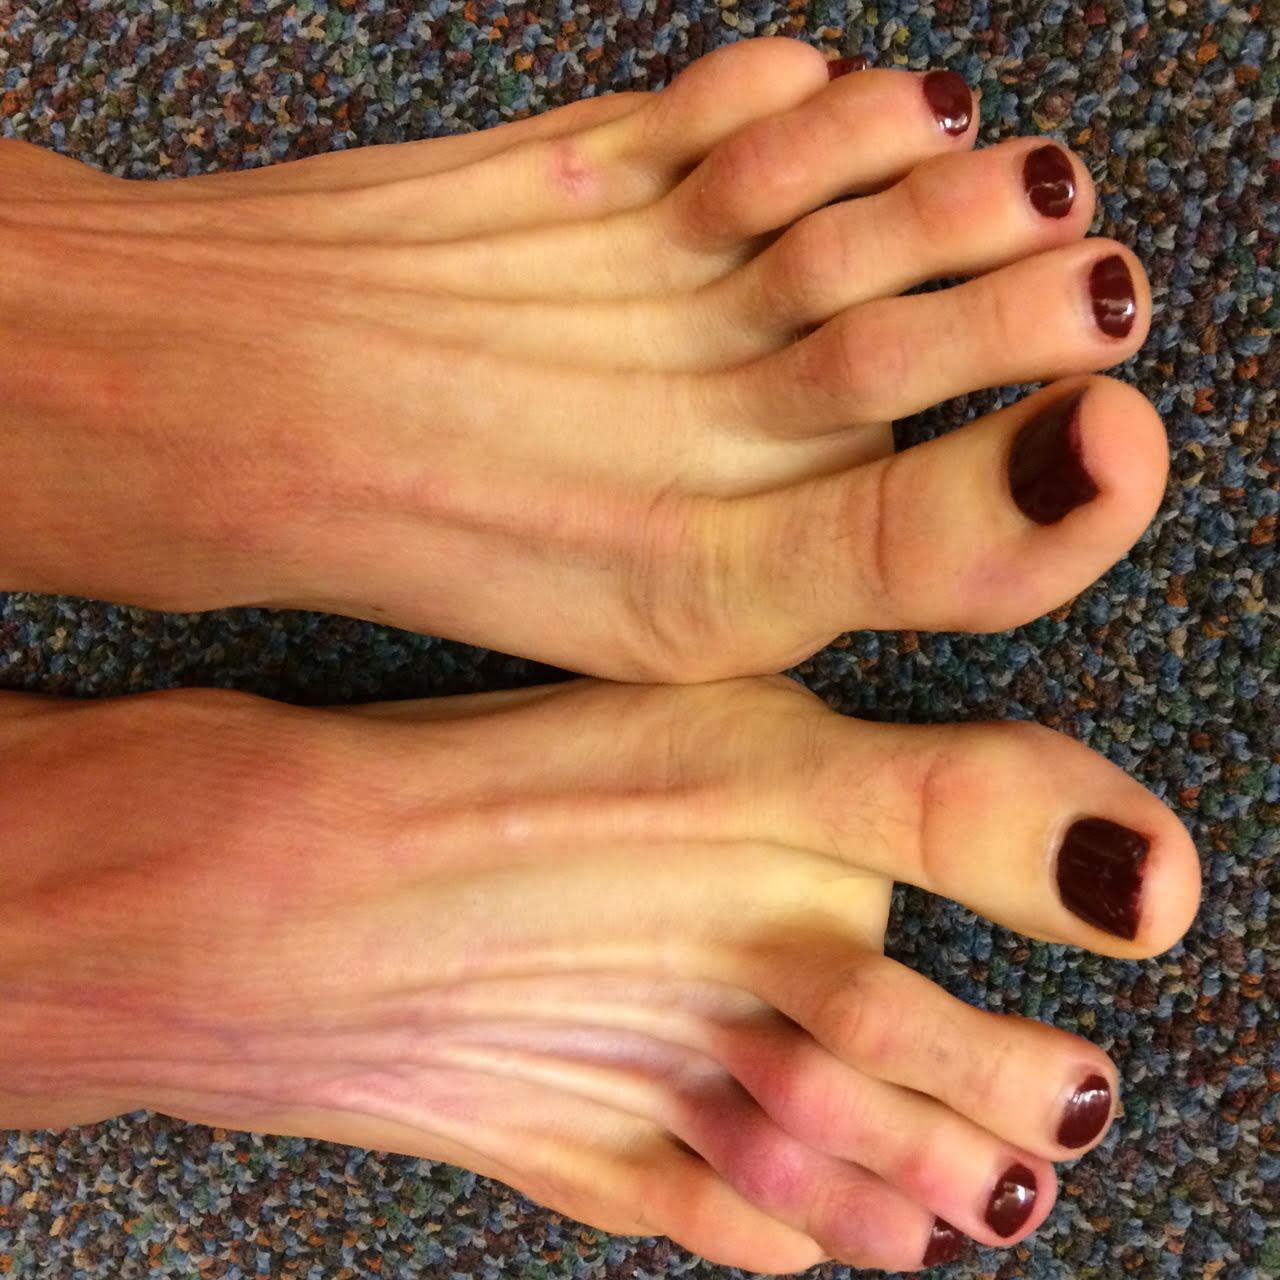 Foot and Ankle Problems By Dr  Richard Blake: Skin and Subcutaneous